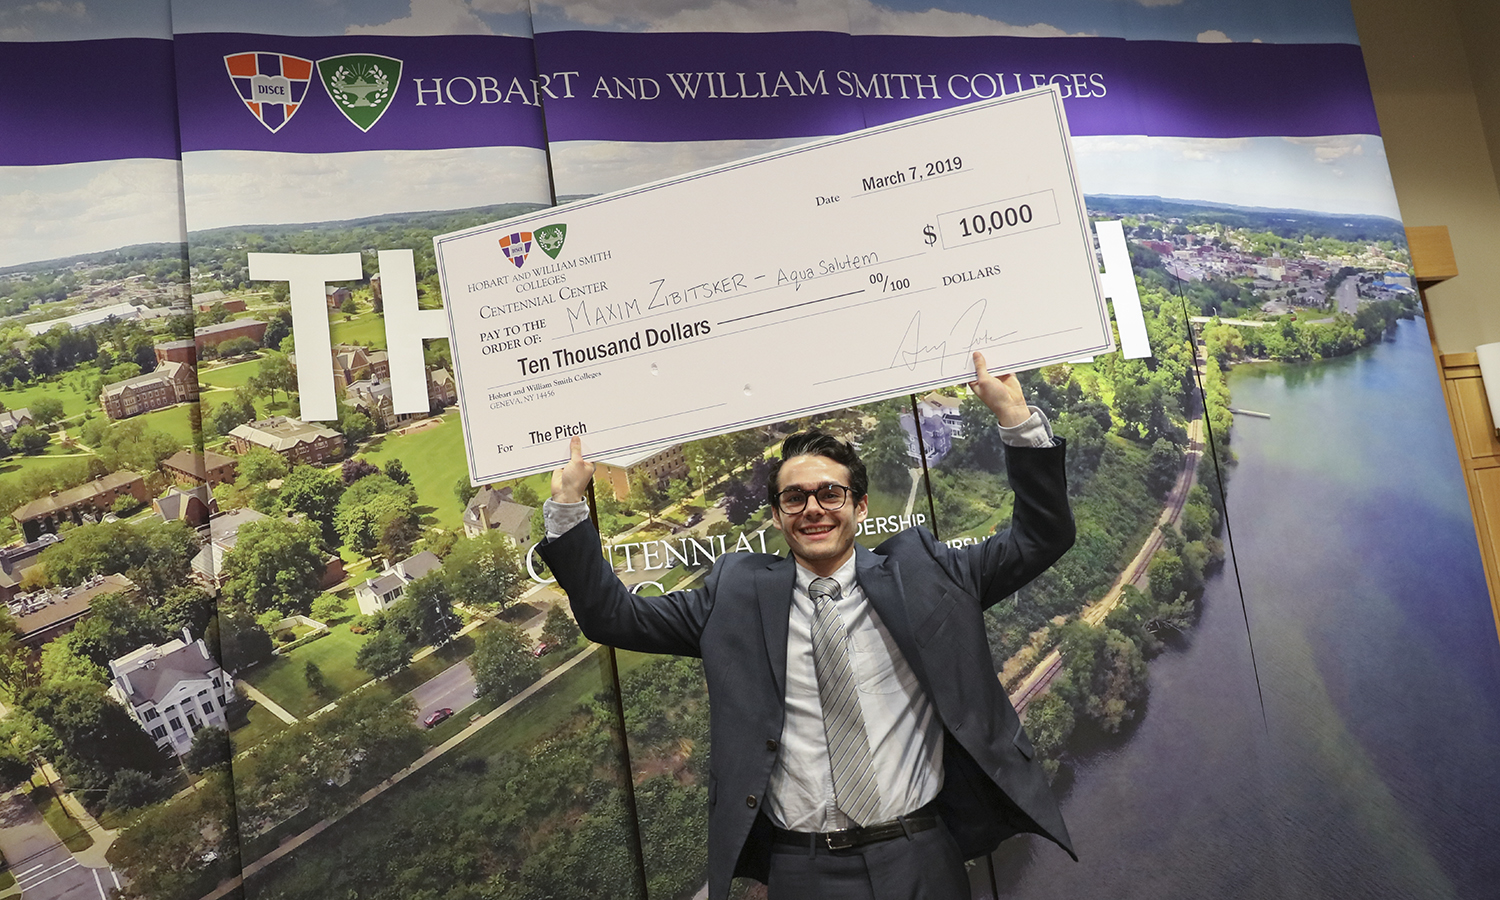 The 2019 winner of the Pitch contest Maxim Zibitsker '19 poses with the $10,000 check. Zibitsker also competed in the finals of 2017 Pitch contest. Since then, he declared an entrepreneurial studies minor at the Colleges, began a mentorship with Visiting Assistant of Entrepreneurial Studies Craig Talmage and pivoted his idea to helping homeowners improve their pool safety.